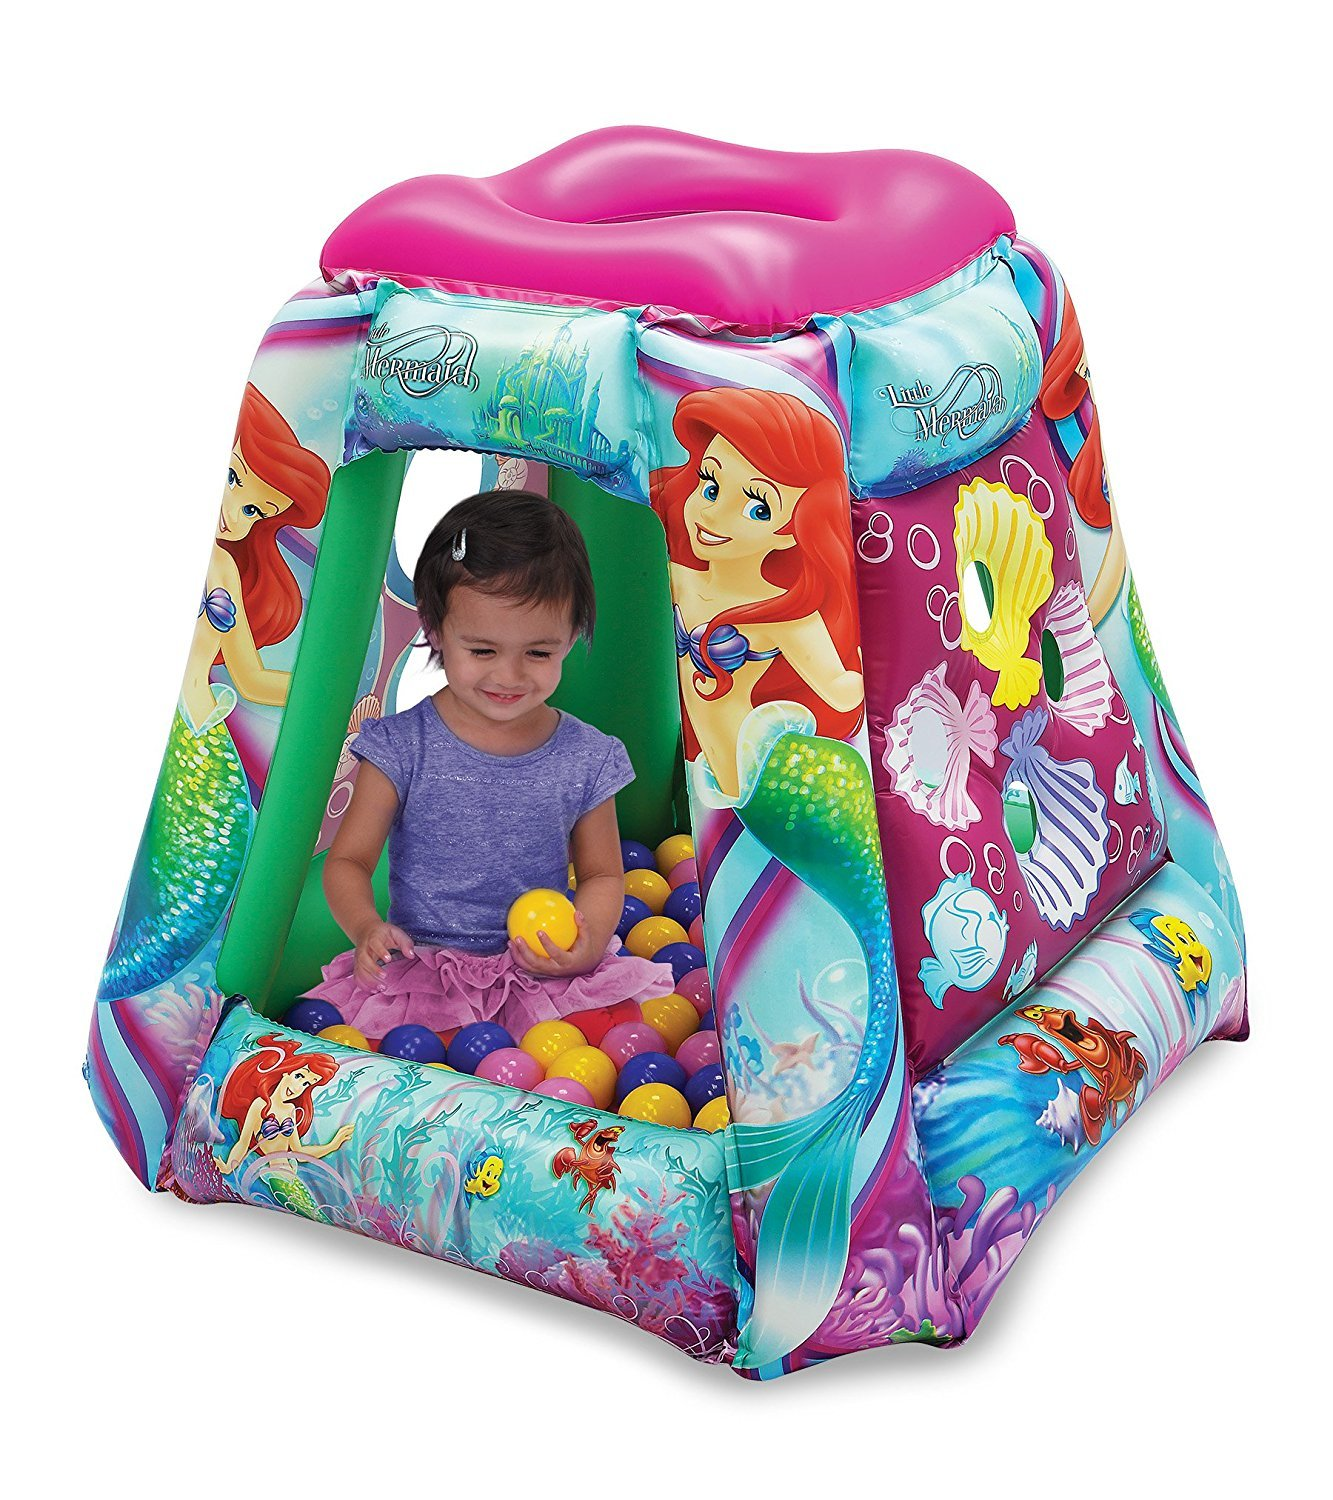 The Little Mermaid 2 Pearl of The Sea Ball Pit, 1 Inflatable & 20 Sof-Flex Balls, Pink/Blue, 37''W x 37''D x 34''H by The Little Mermaid